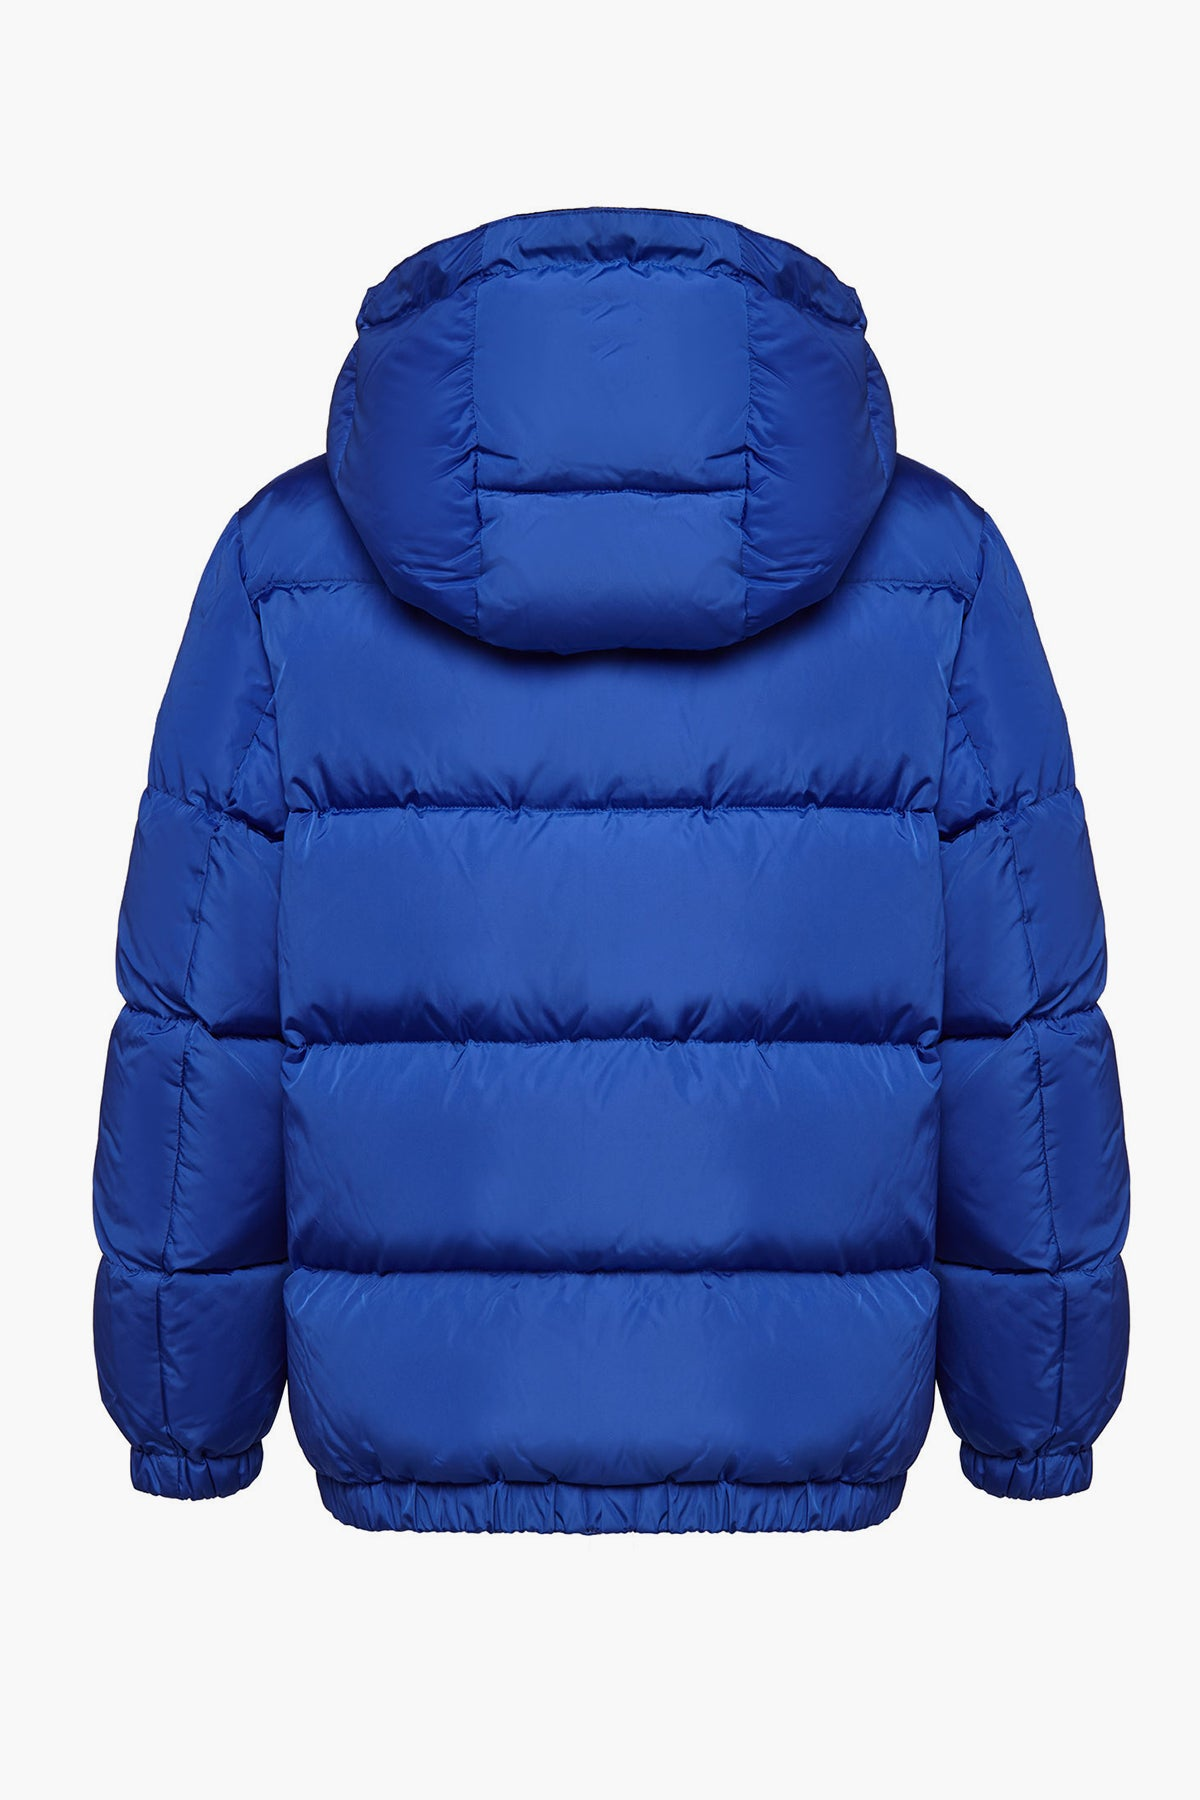 ADD Down Boys Down Jacket - Pacific Blue